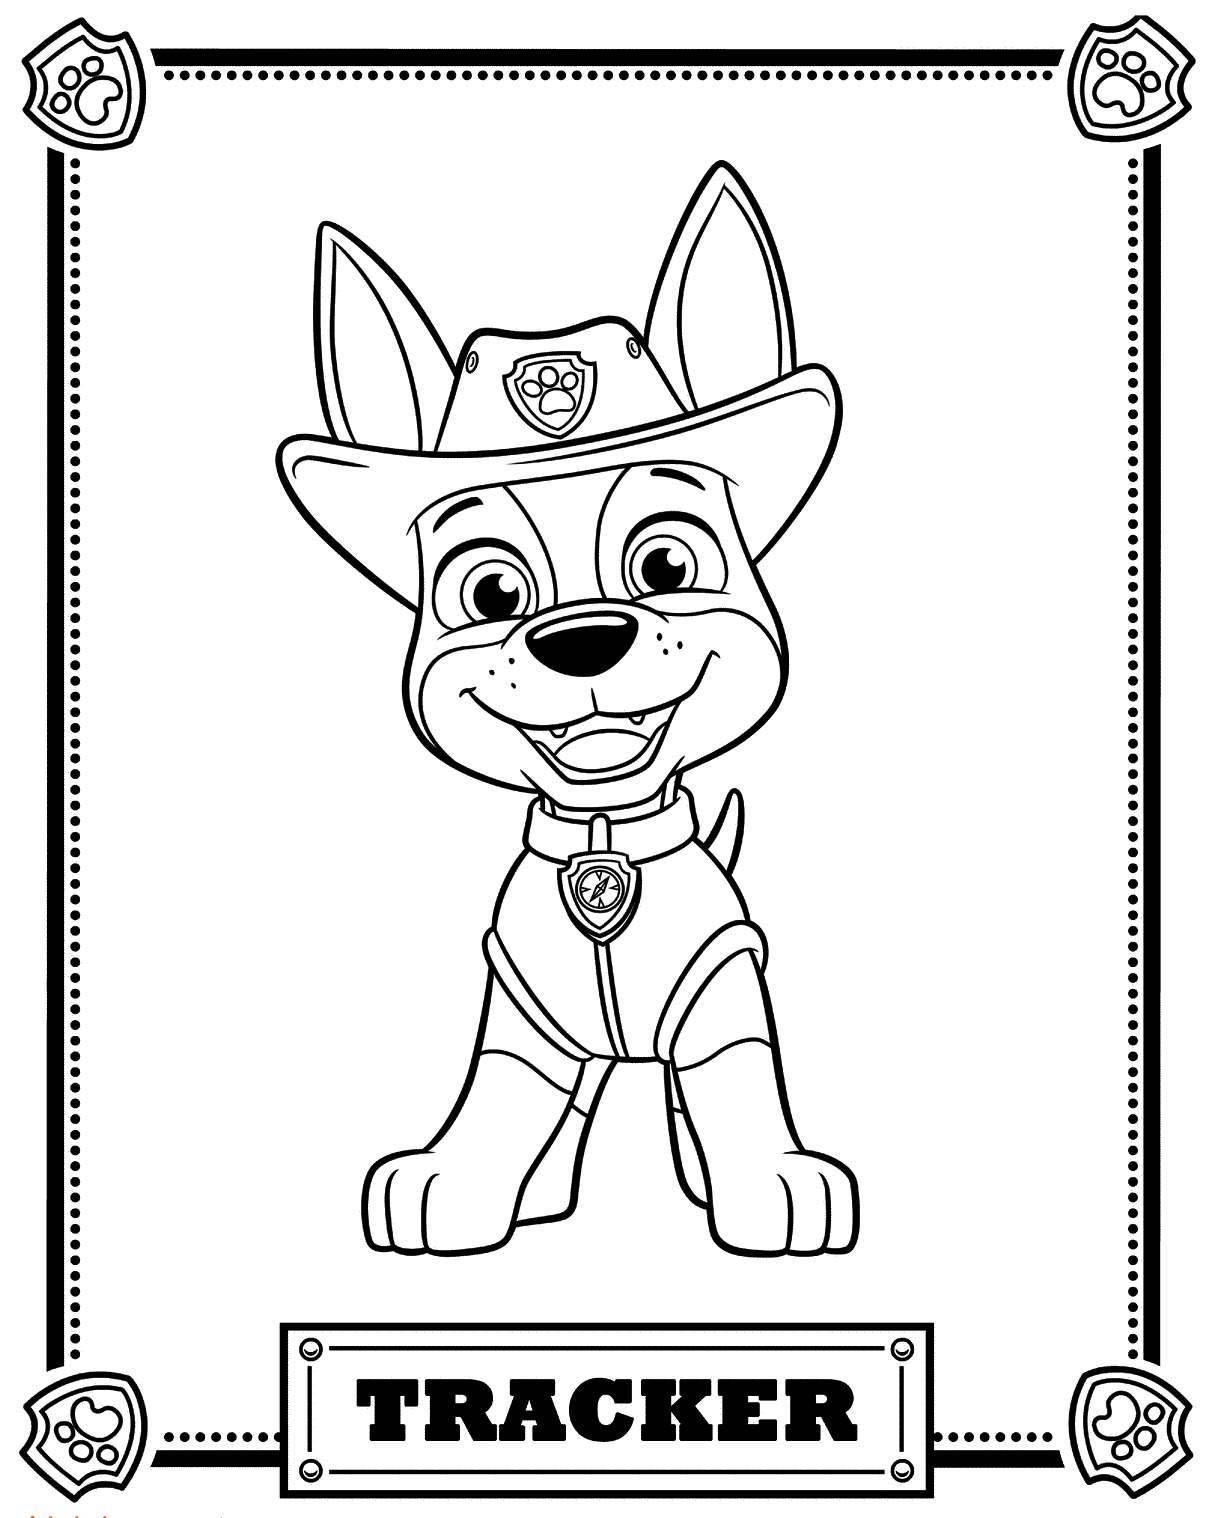 Top 10 Paw Patrol Coloring Pages Paw Patrol Coloring Pages Paw Patrol Coloring Paw Patrol Printables